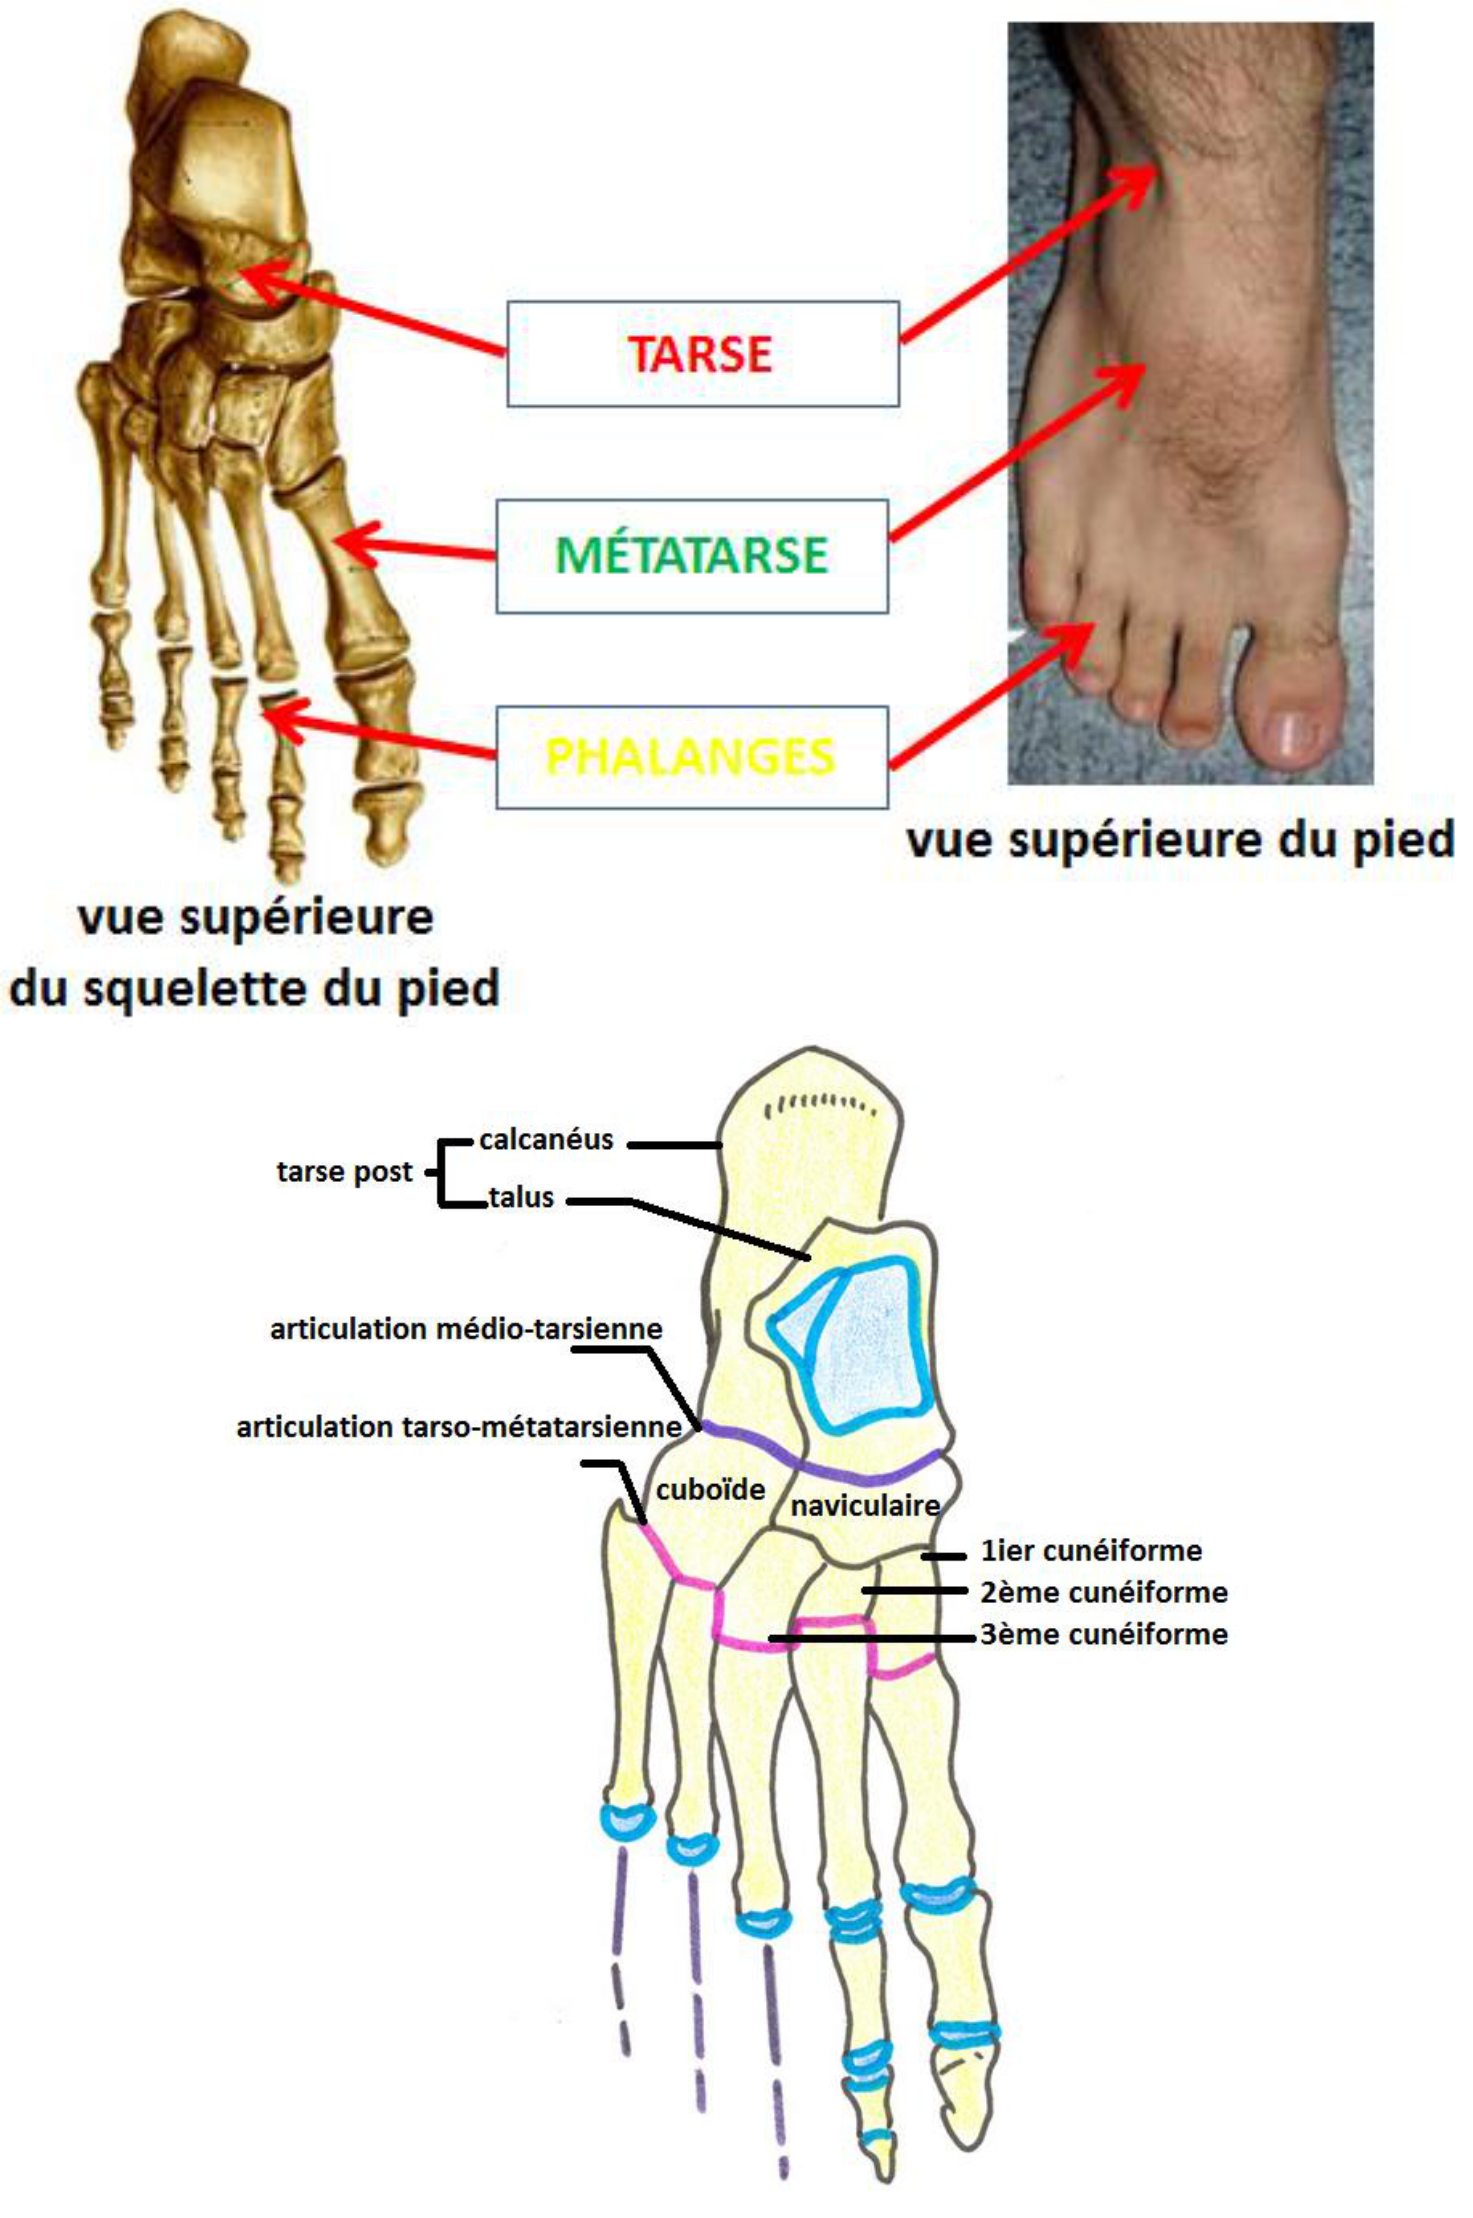 LE PIED OSSEUX Cours anatomie humaine